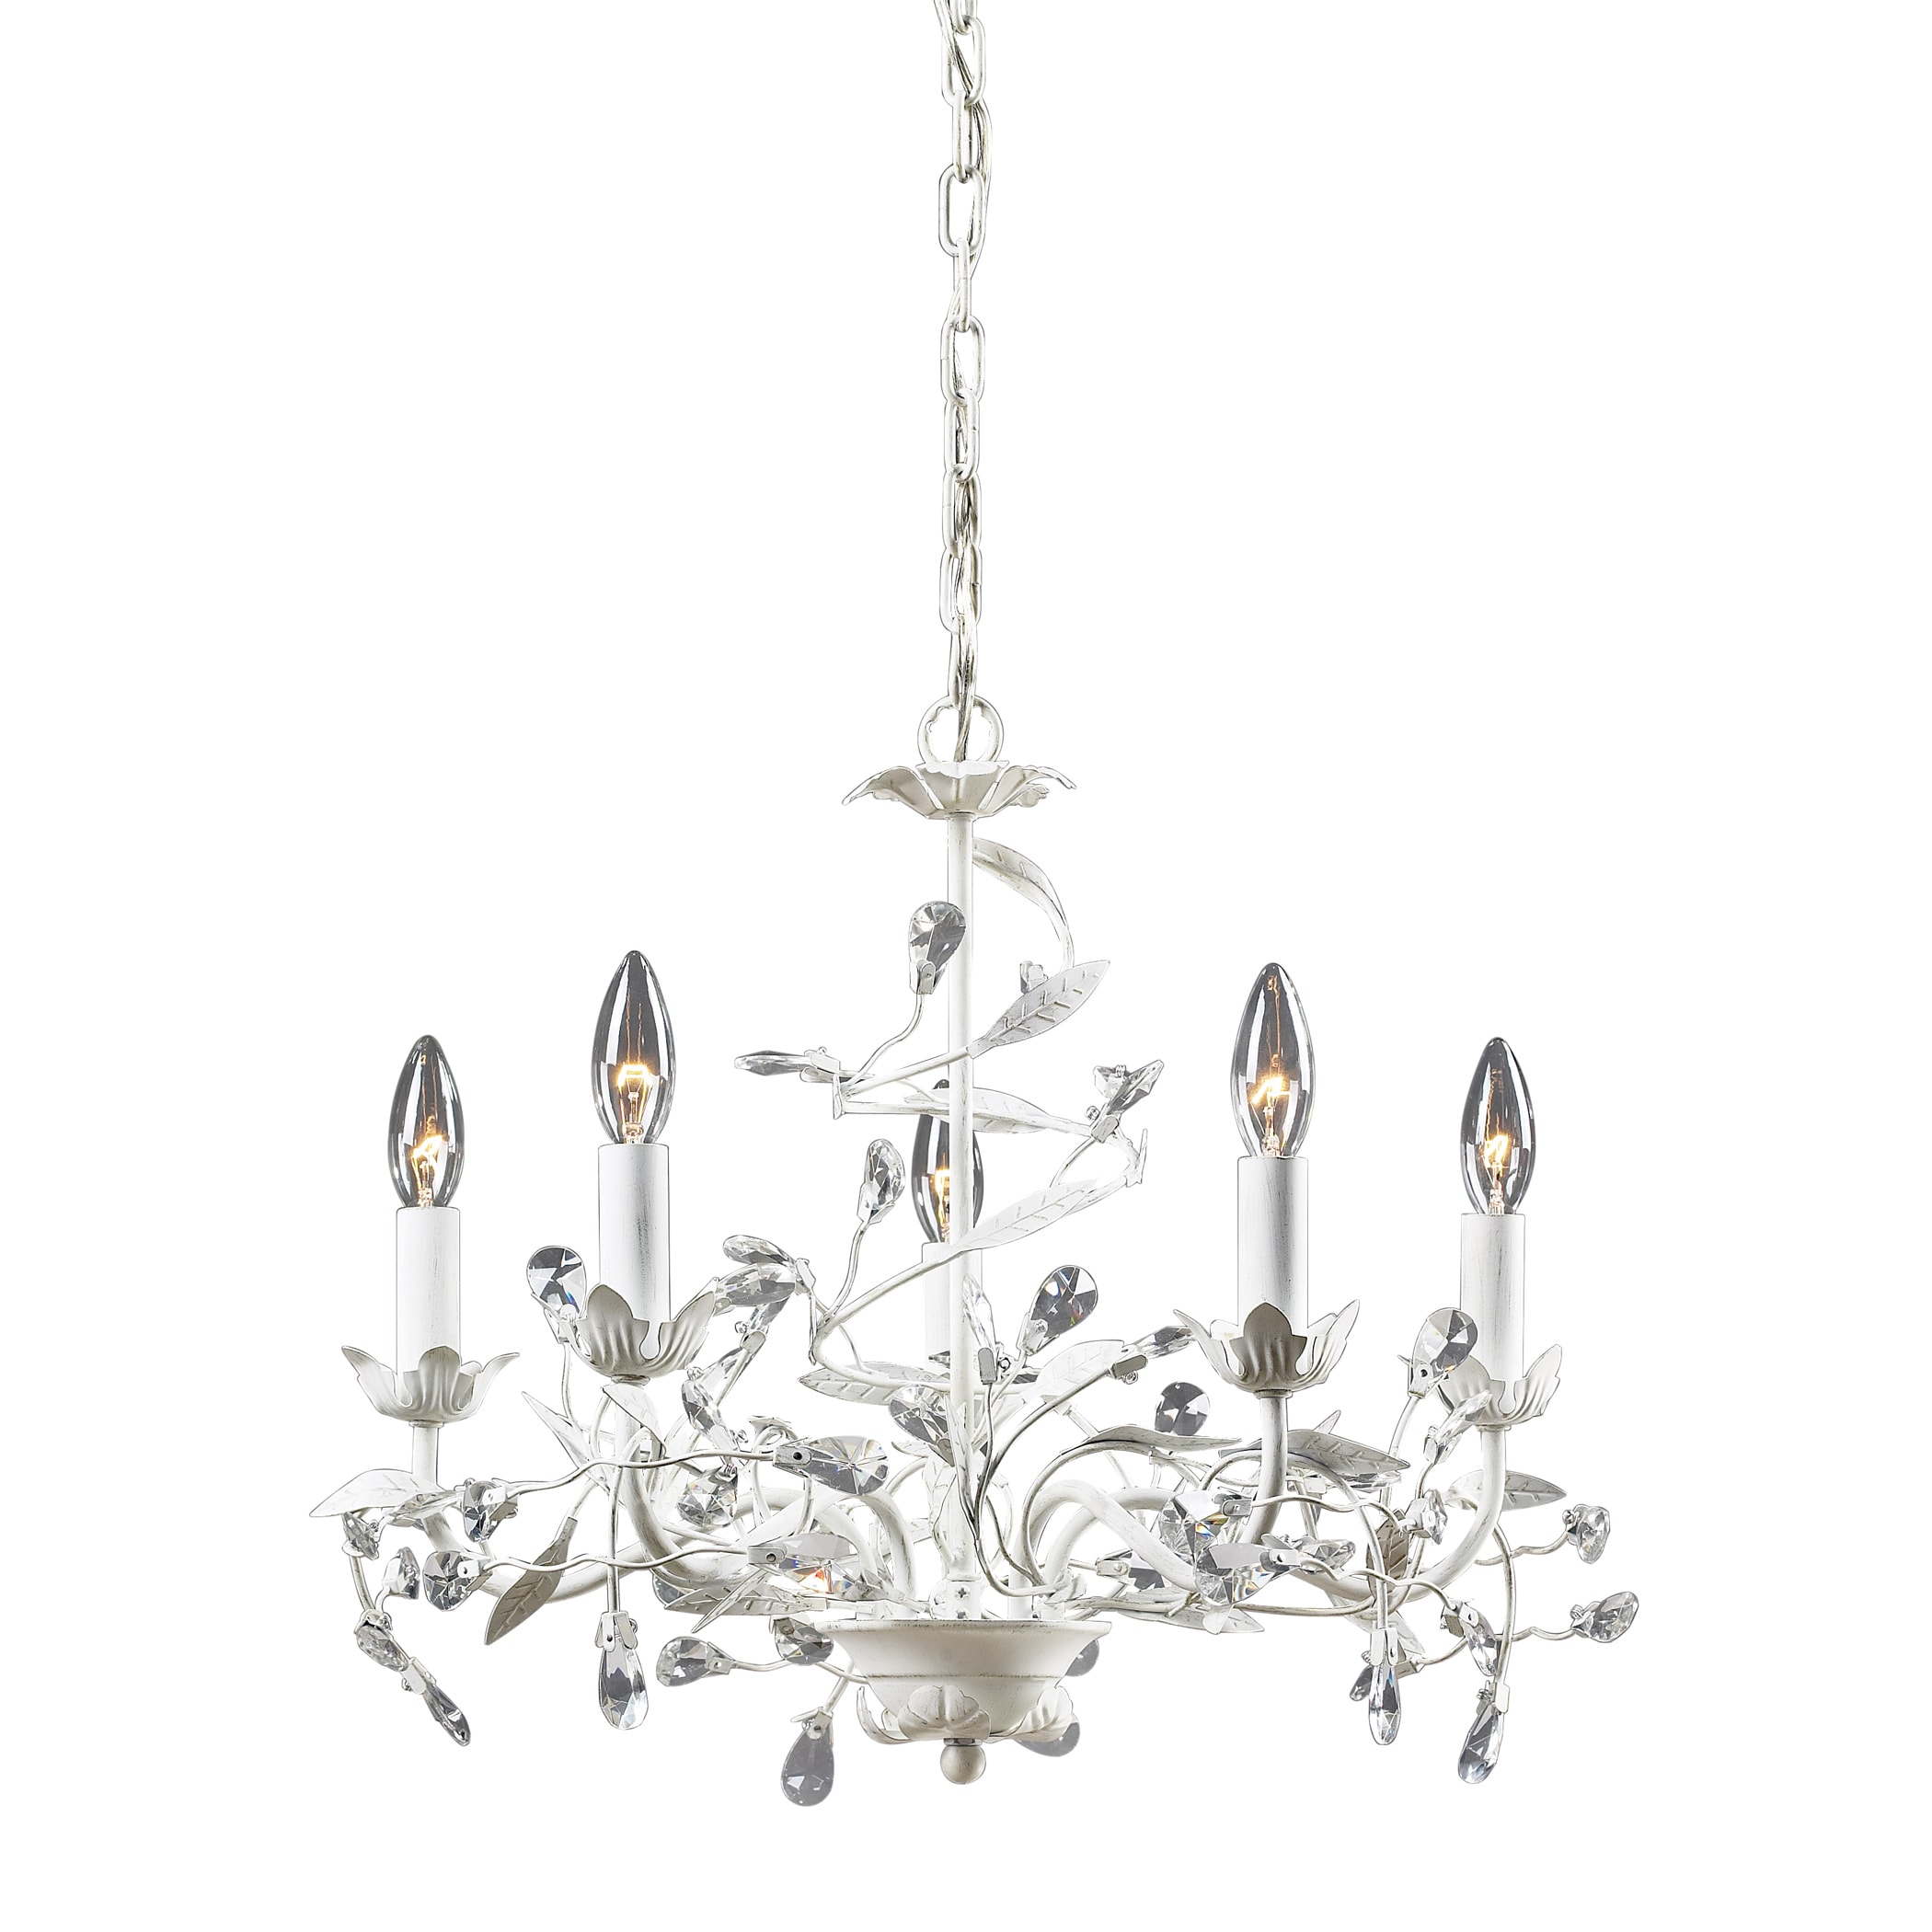 Elk Lighting Circeo Antique White 5 light Chandelier Free